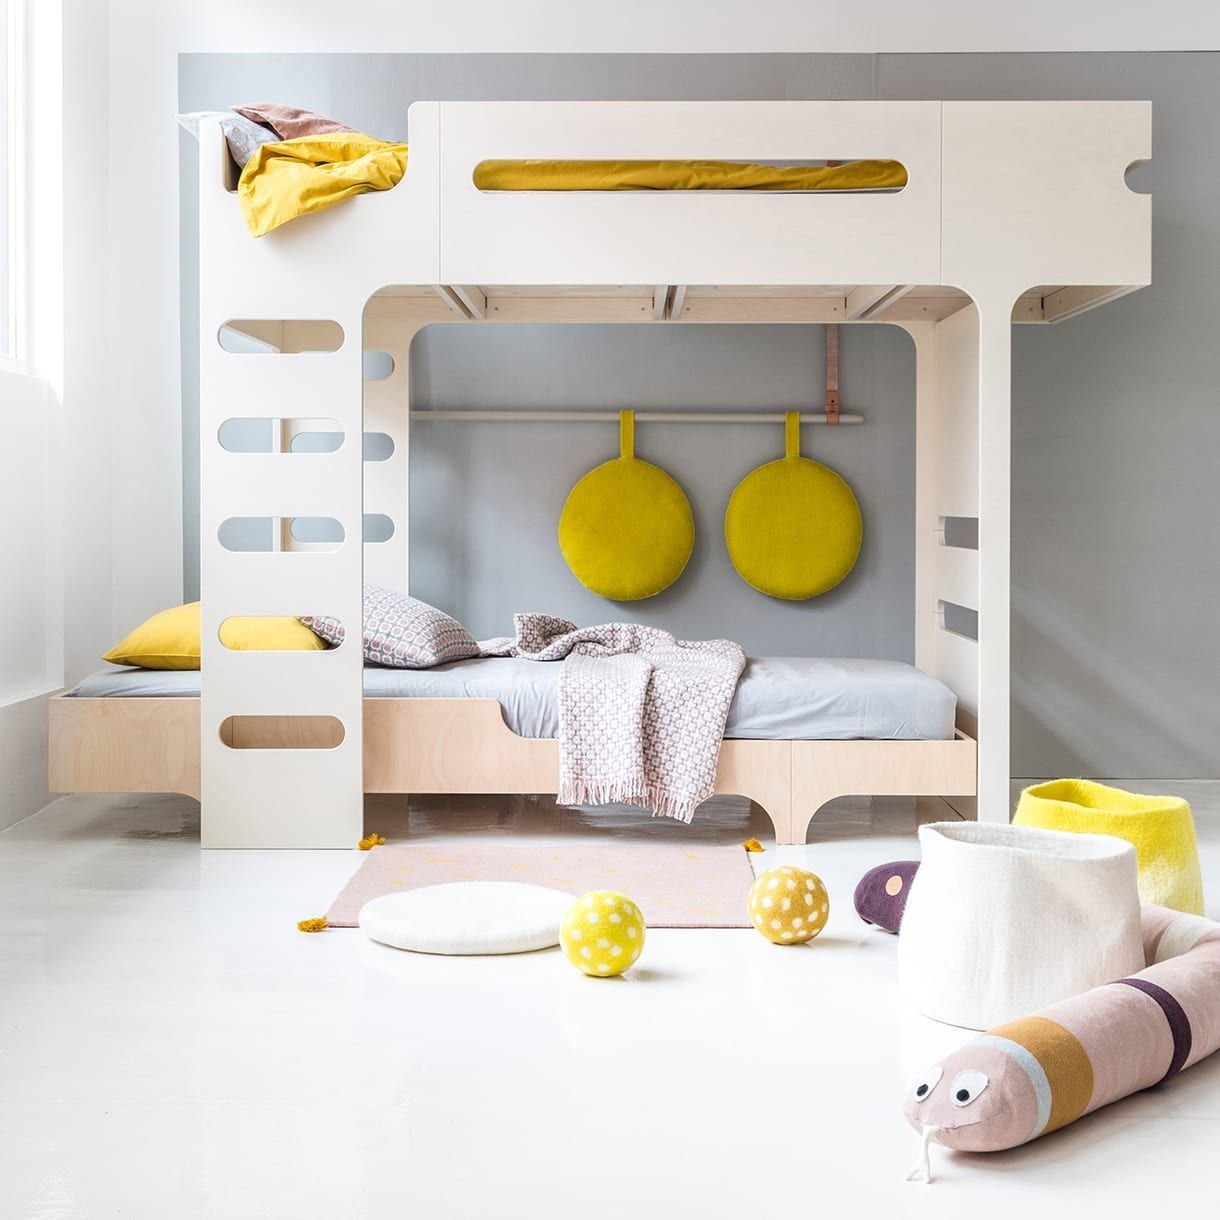 Design furniture for childrenus rooms beds desks benches rafa